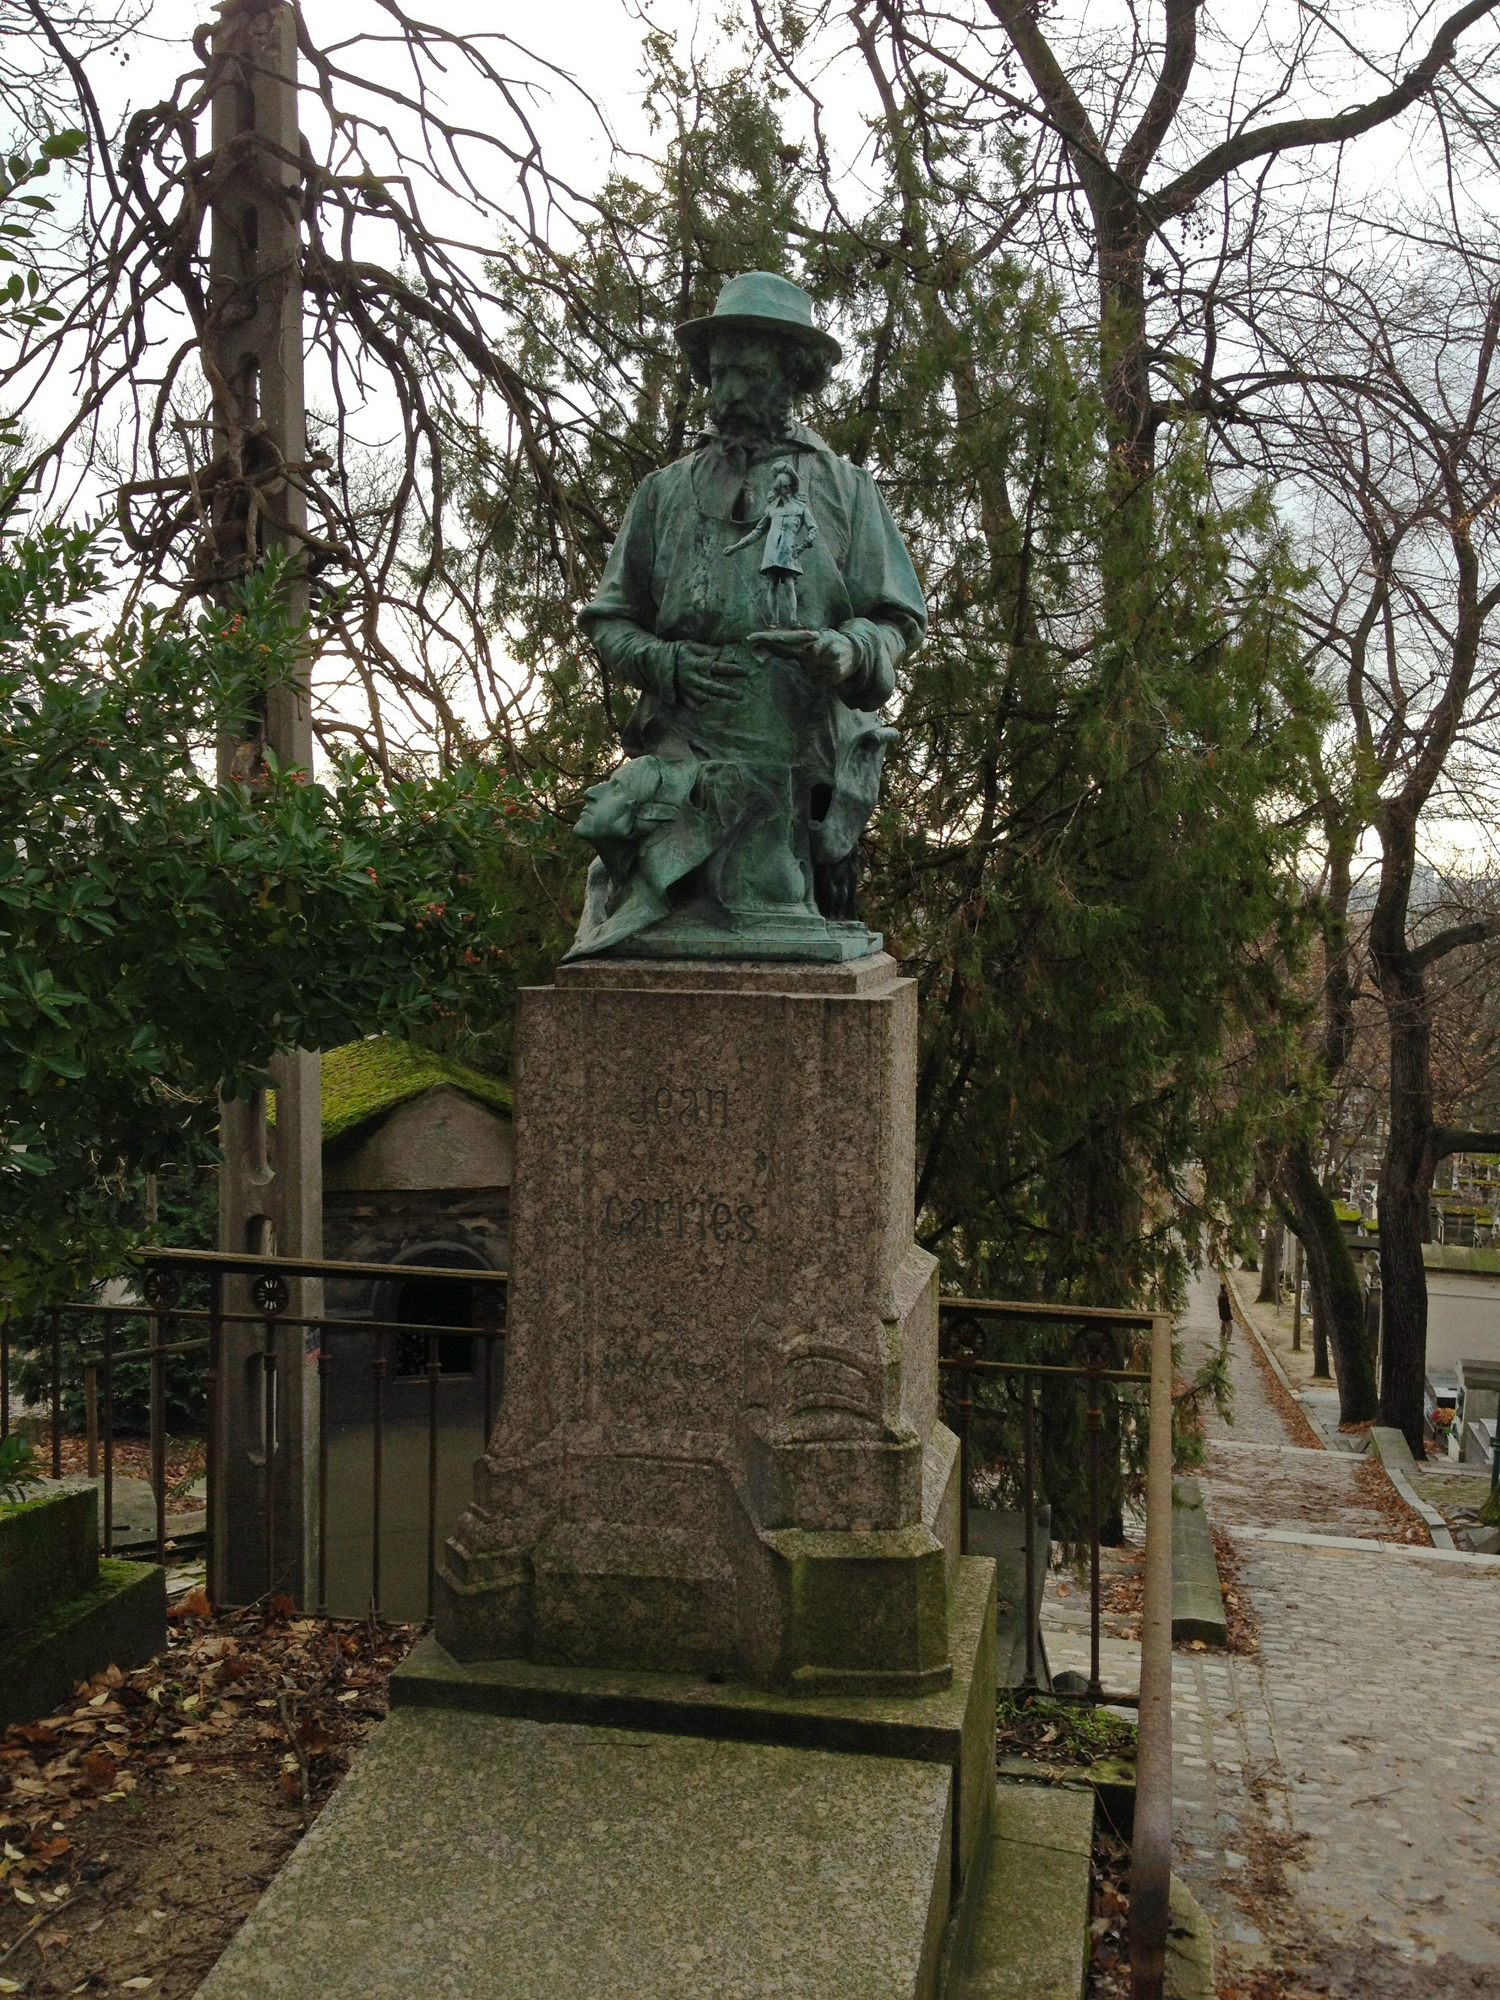 Ventriloquist sculpture at Pere Lachaise Cemetery